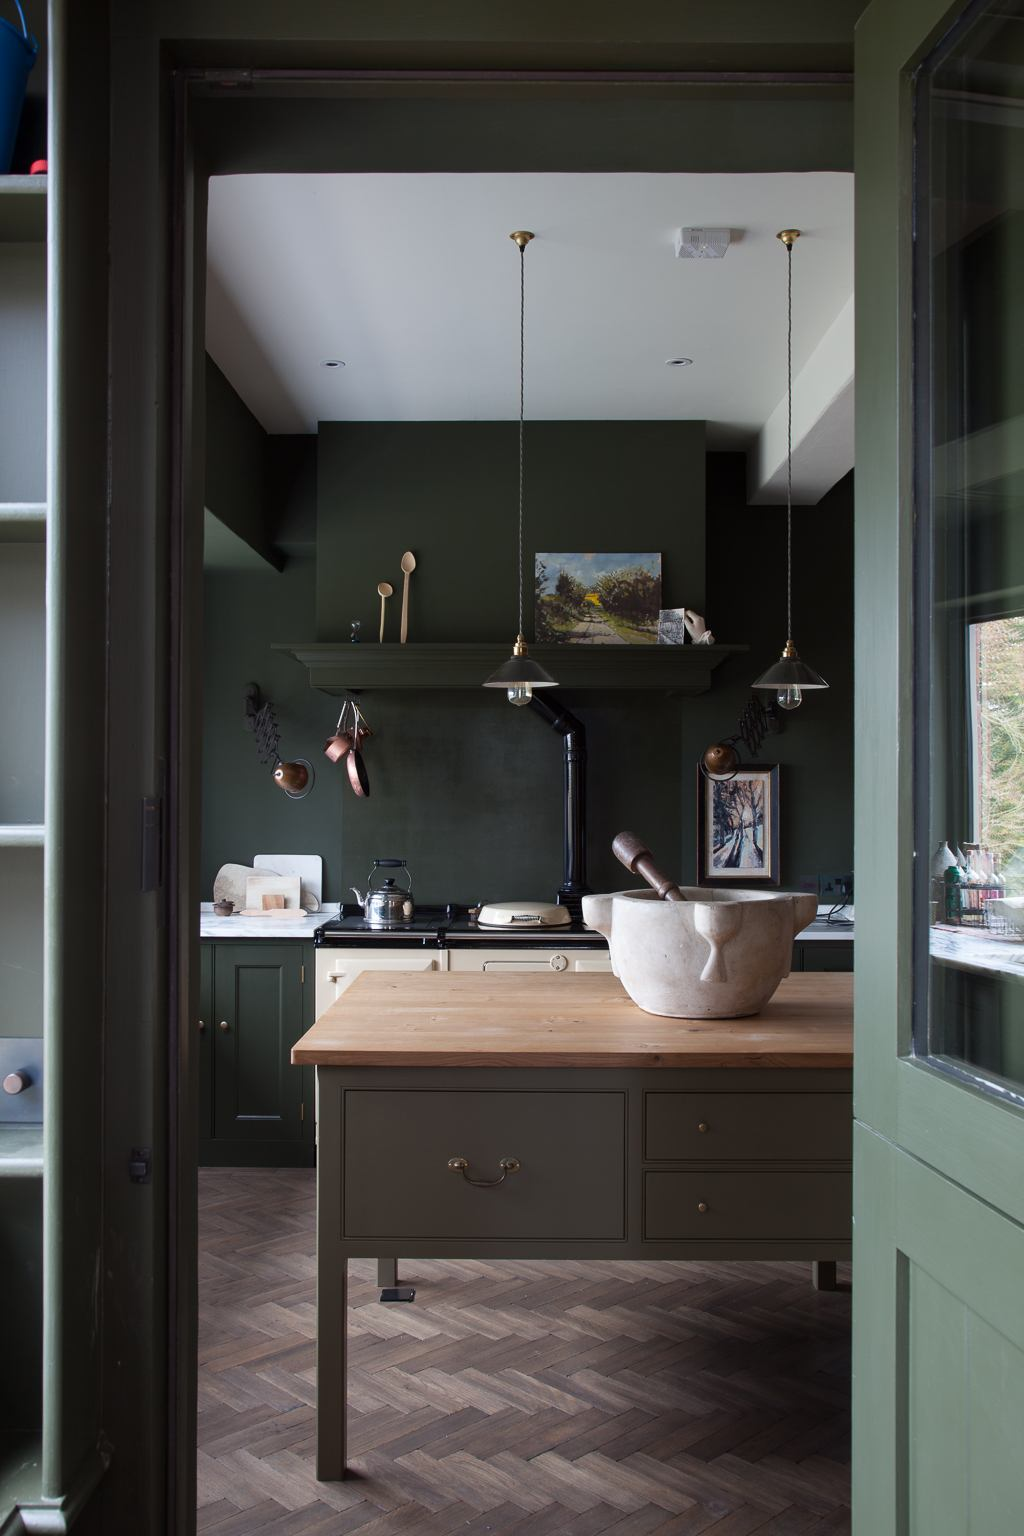 Moody green kitchen with wooden island and herringbone floors.